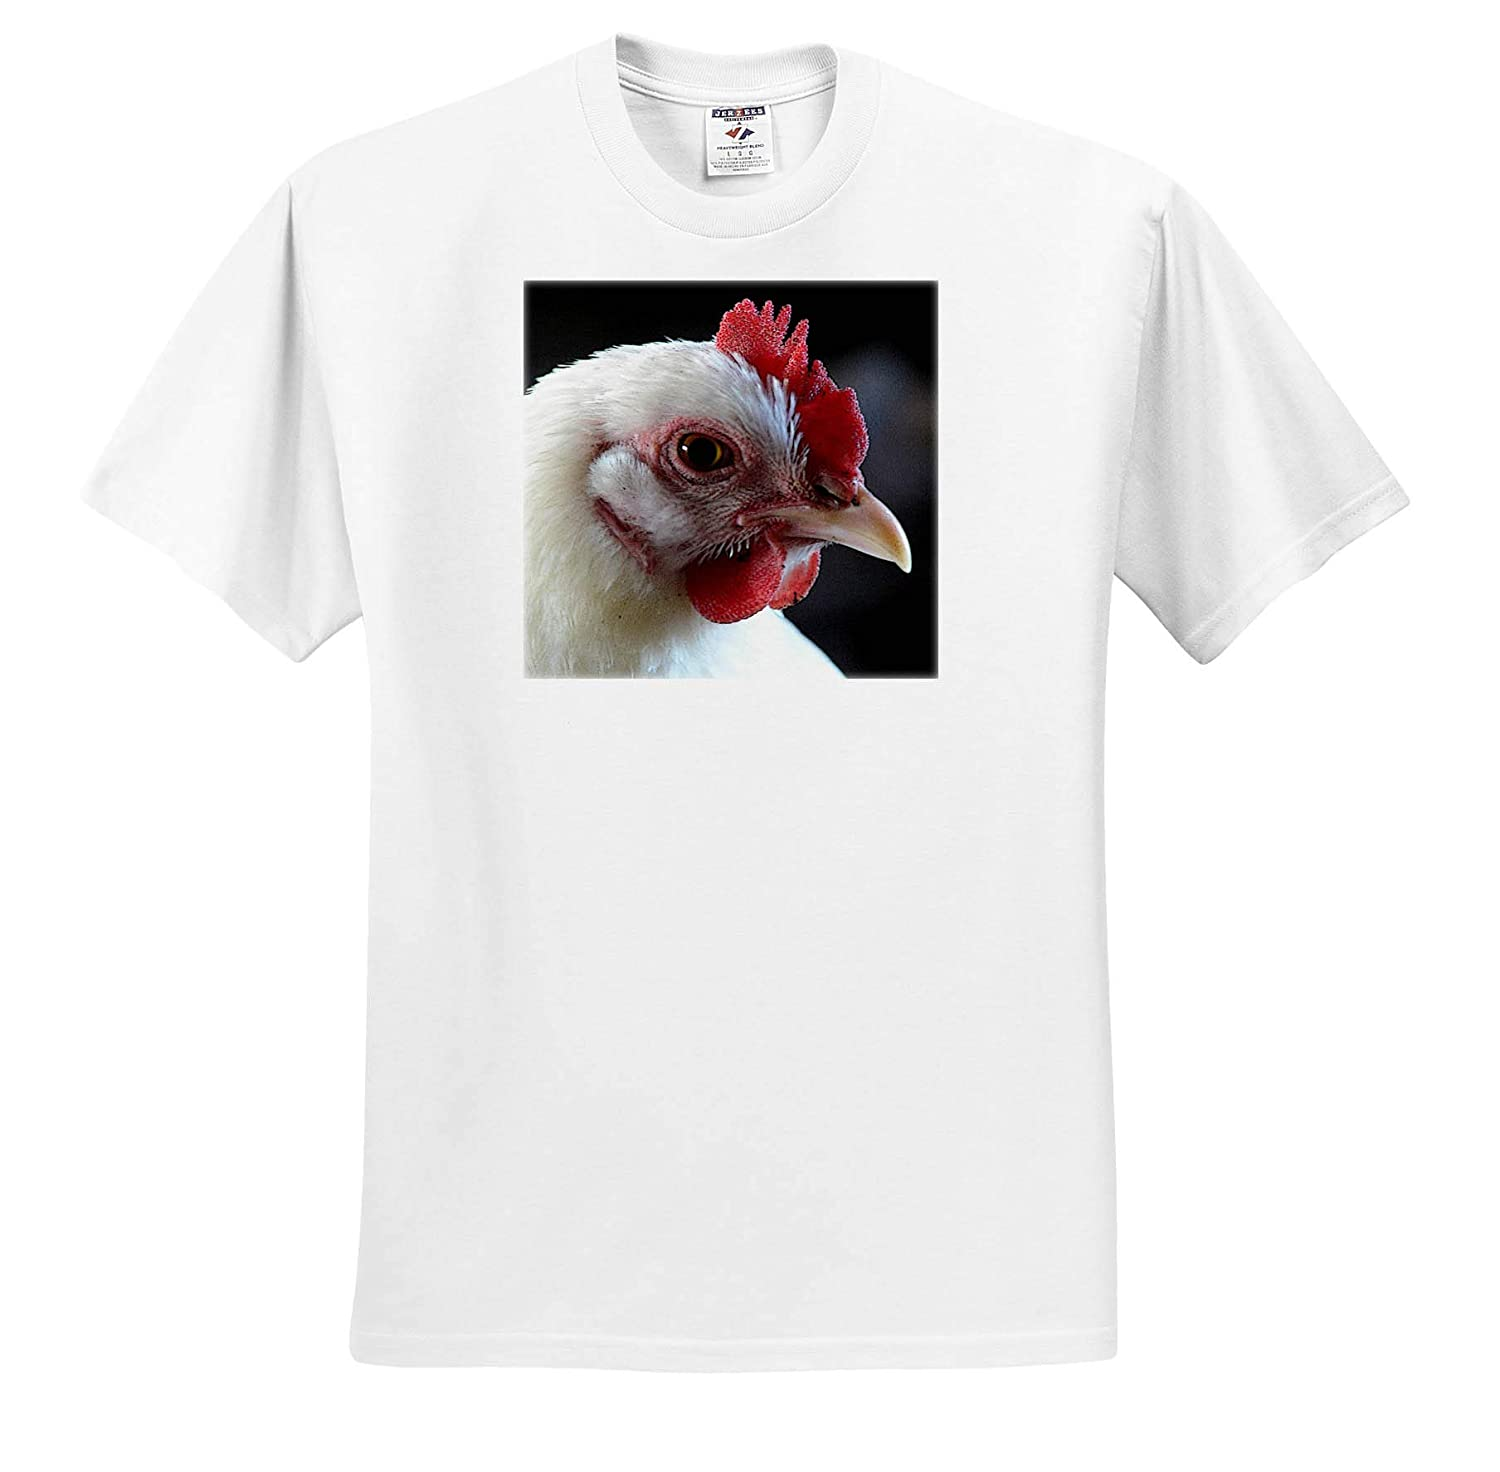 3dRose Cassie Peters Chickens T-Shirts White Hen